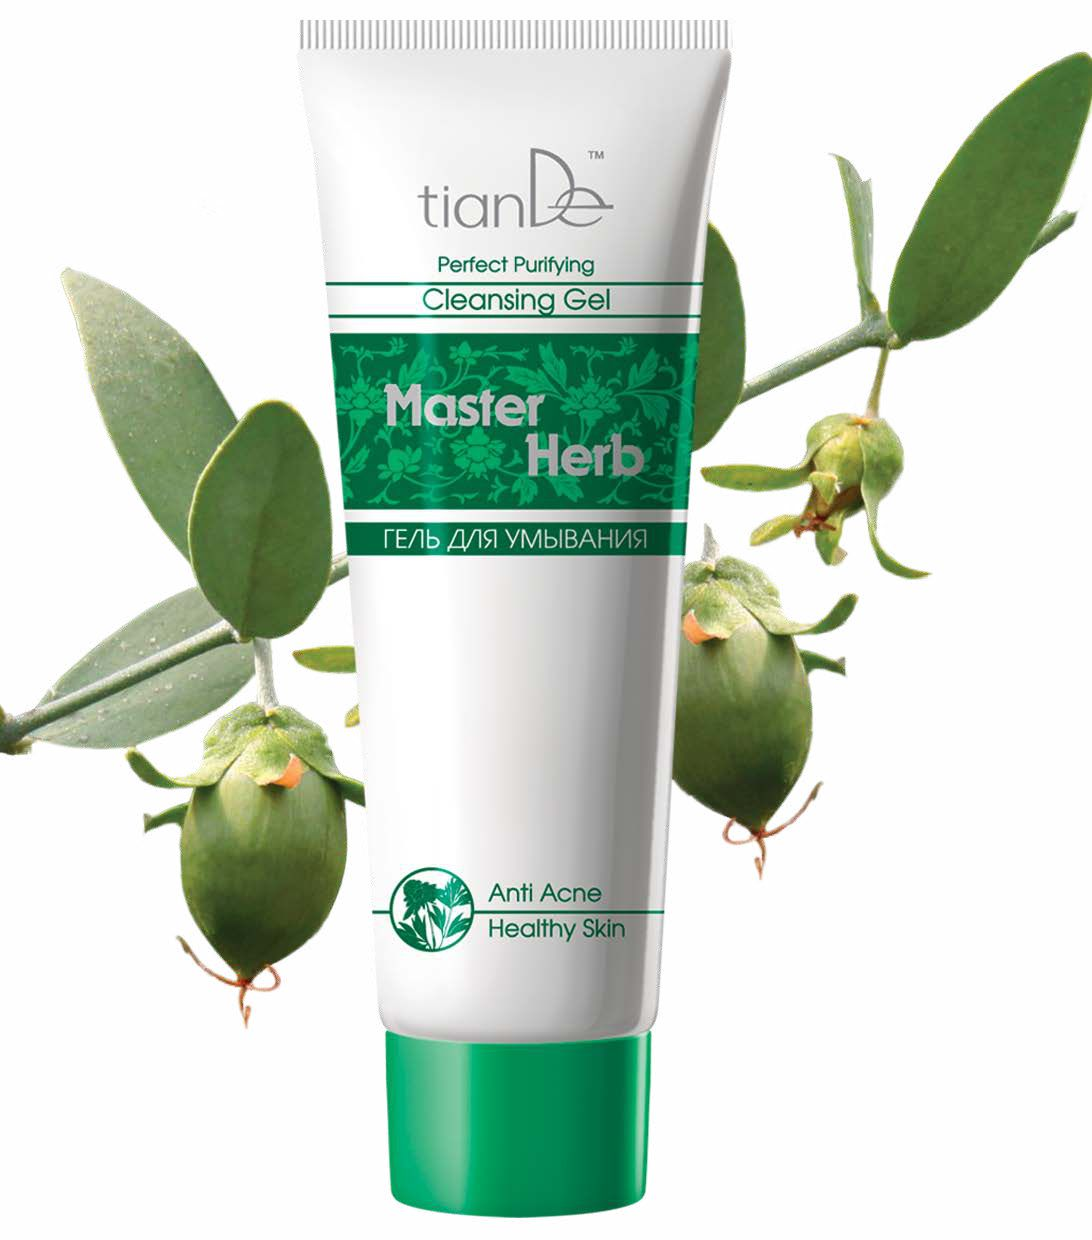 anti acne Cleansing Facial Gel